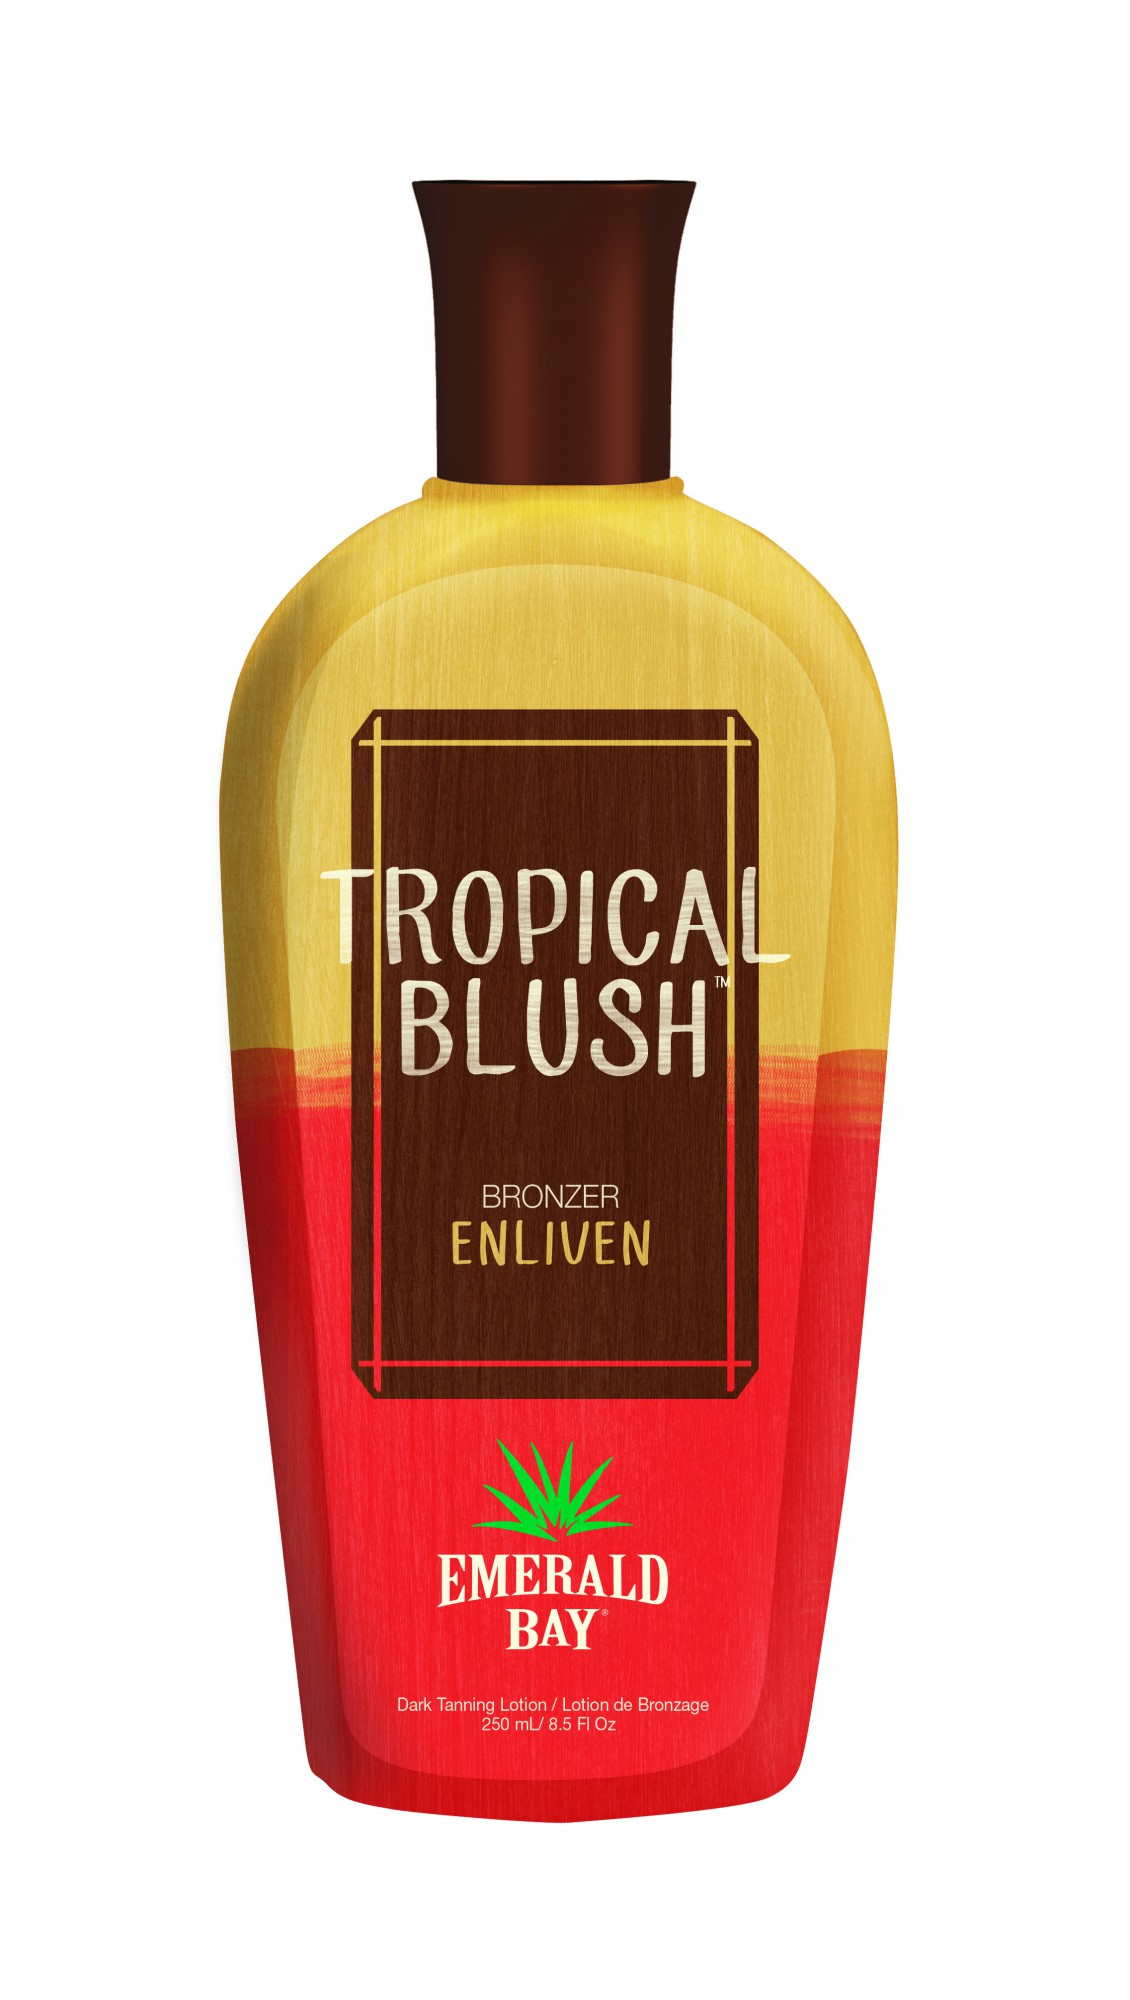 Tropical Blush™ Blushing Bronzer Enliven